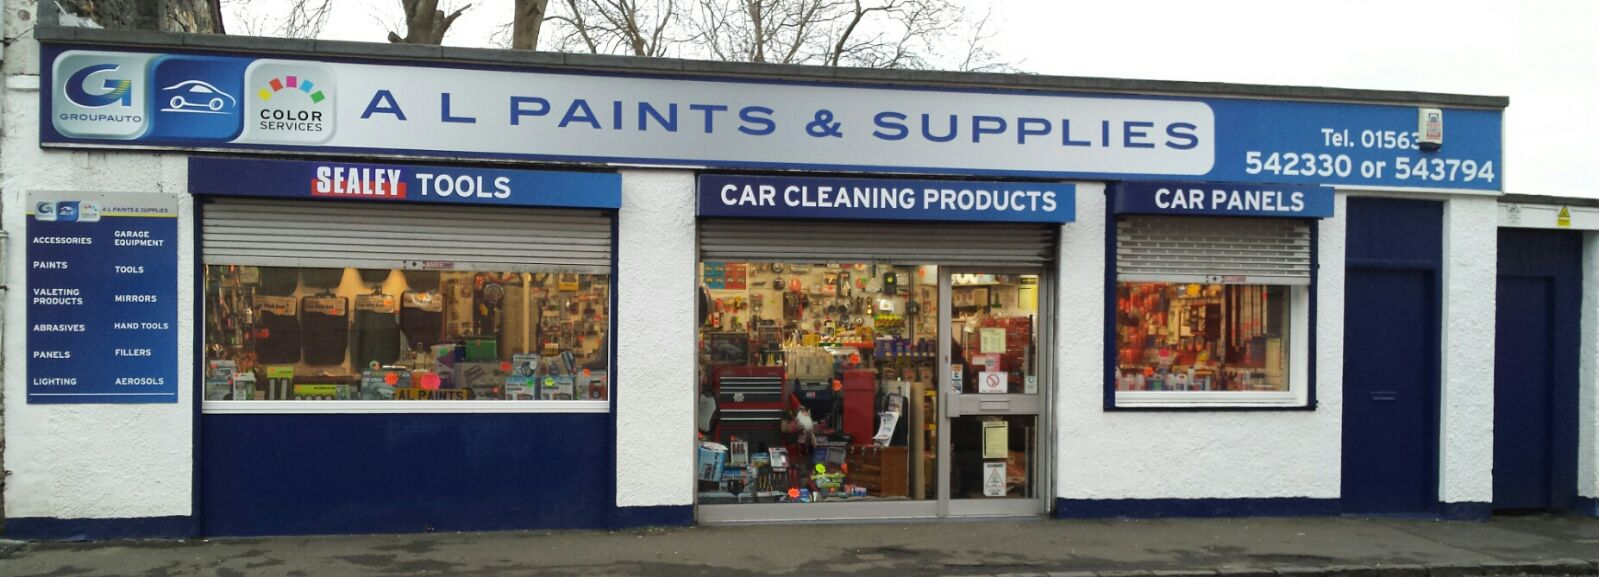 A L Paint and Supplies